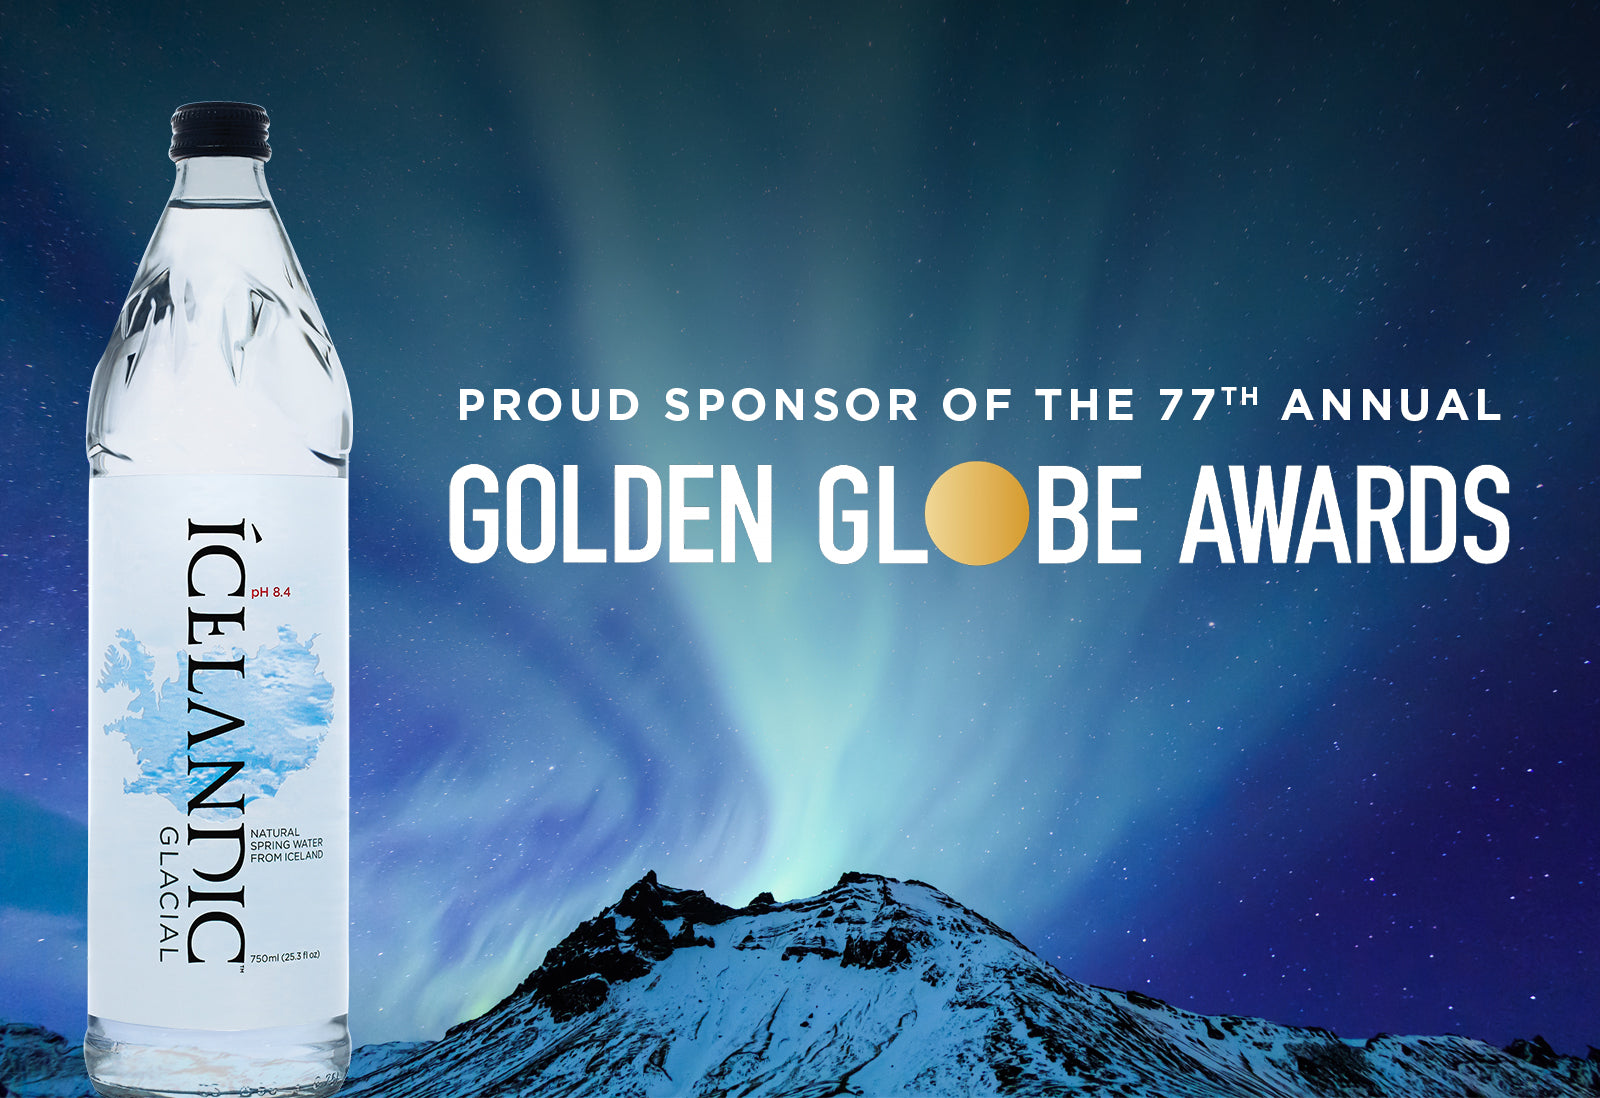 Icelandic Glacial Unveiled as the Official Water Sponsor of the Golden Globes